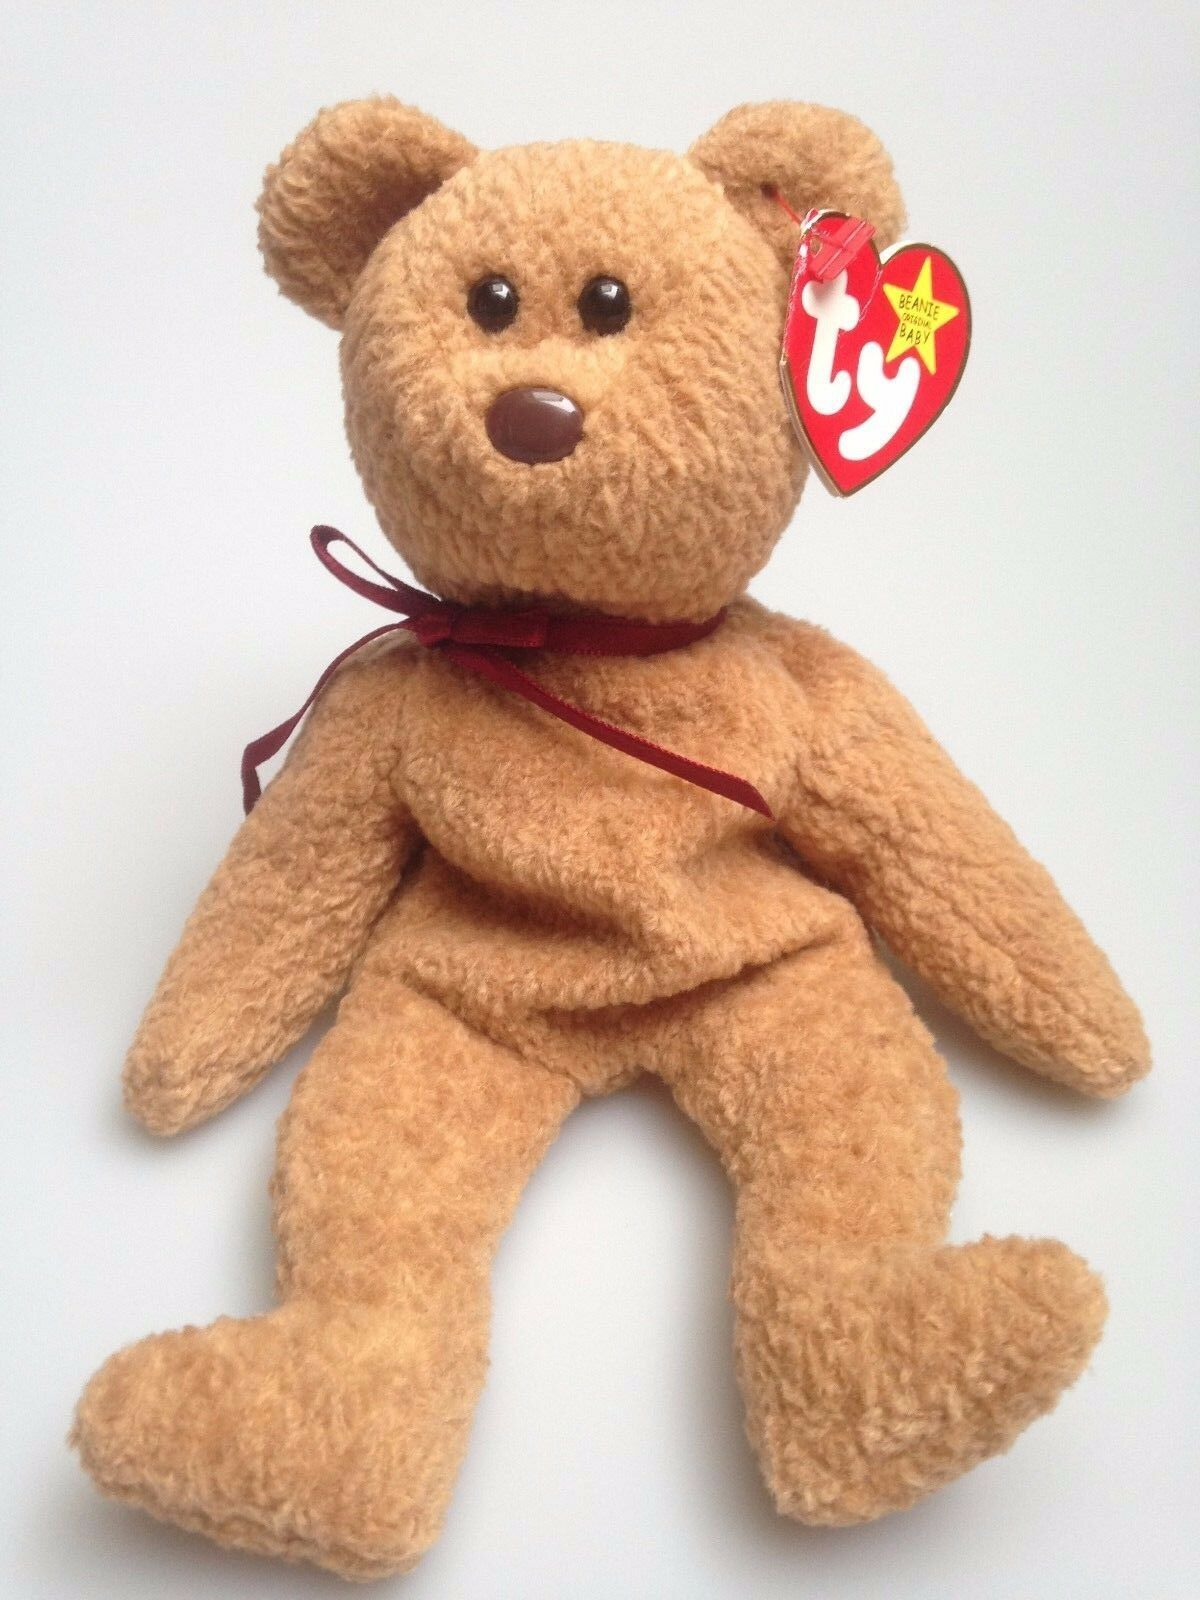 Collectable Rare Retired TY Beanie Baby CURLY THE BEAR With Rare Tag Errors